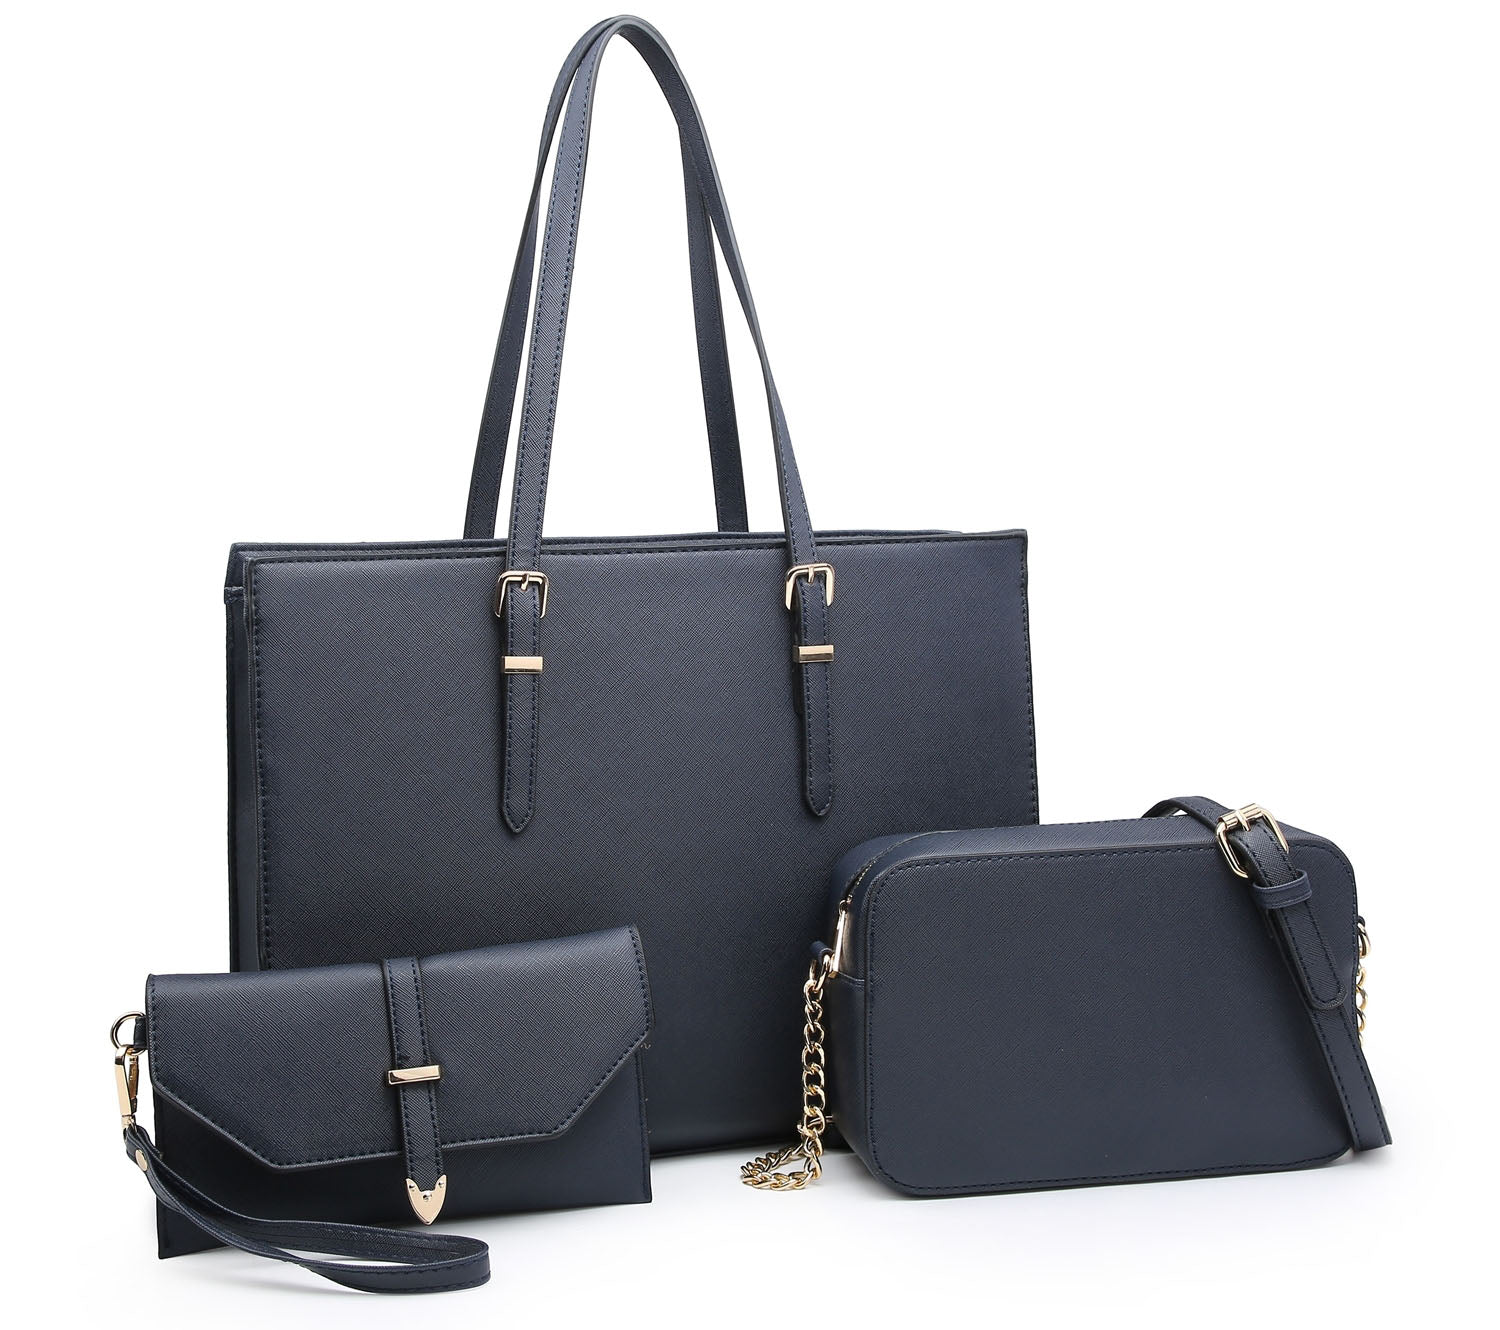 LARGE NAVY BLUE TOTE HANDBAG SET WITH PURSE AND CHAIN CROSSBODY BAG